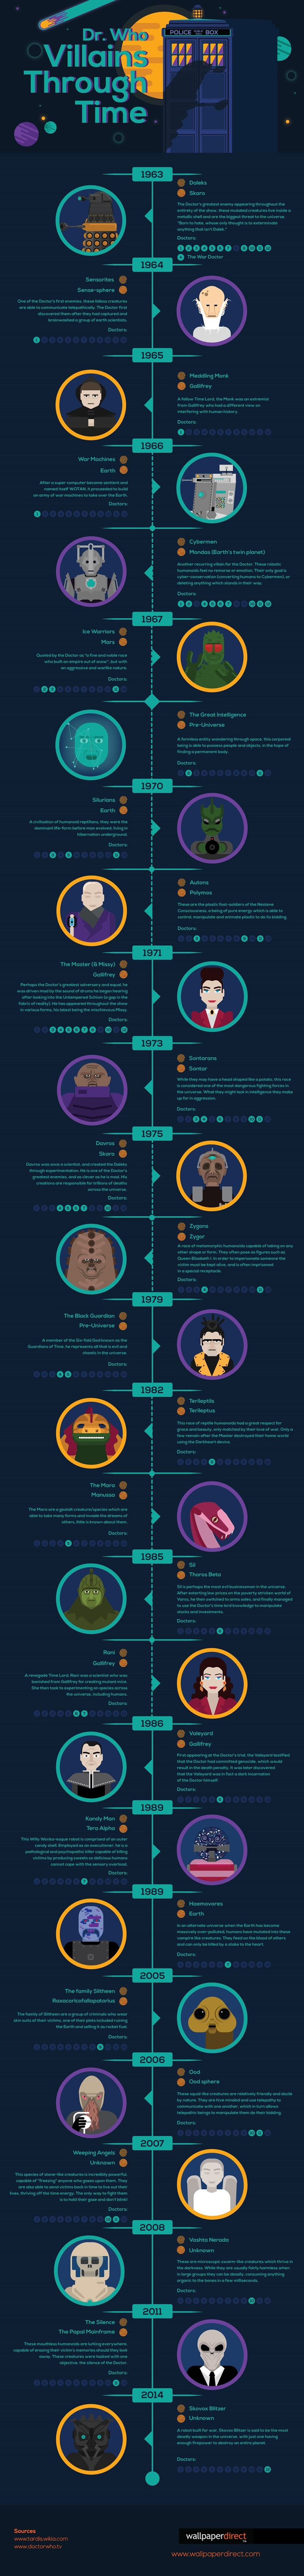 villains,doctor who,infographic